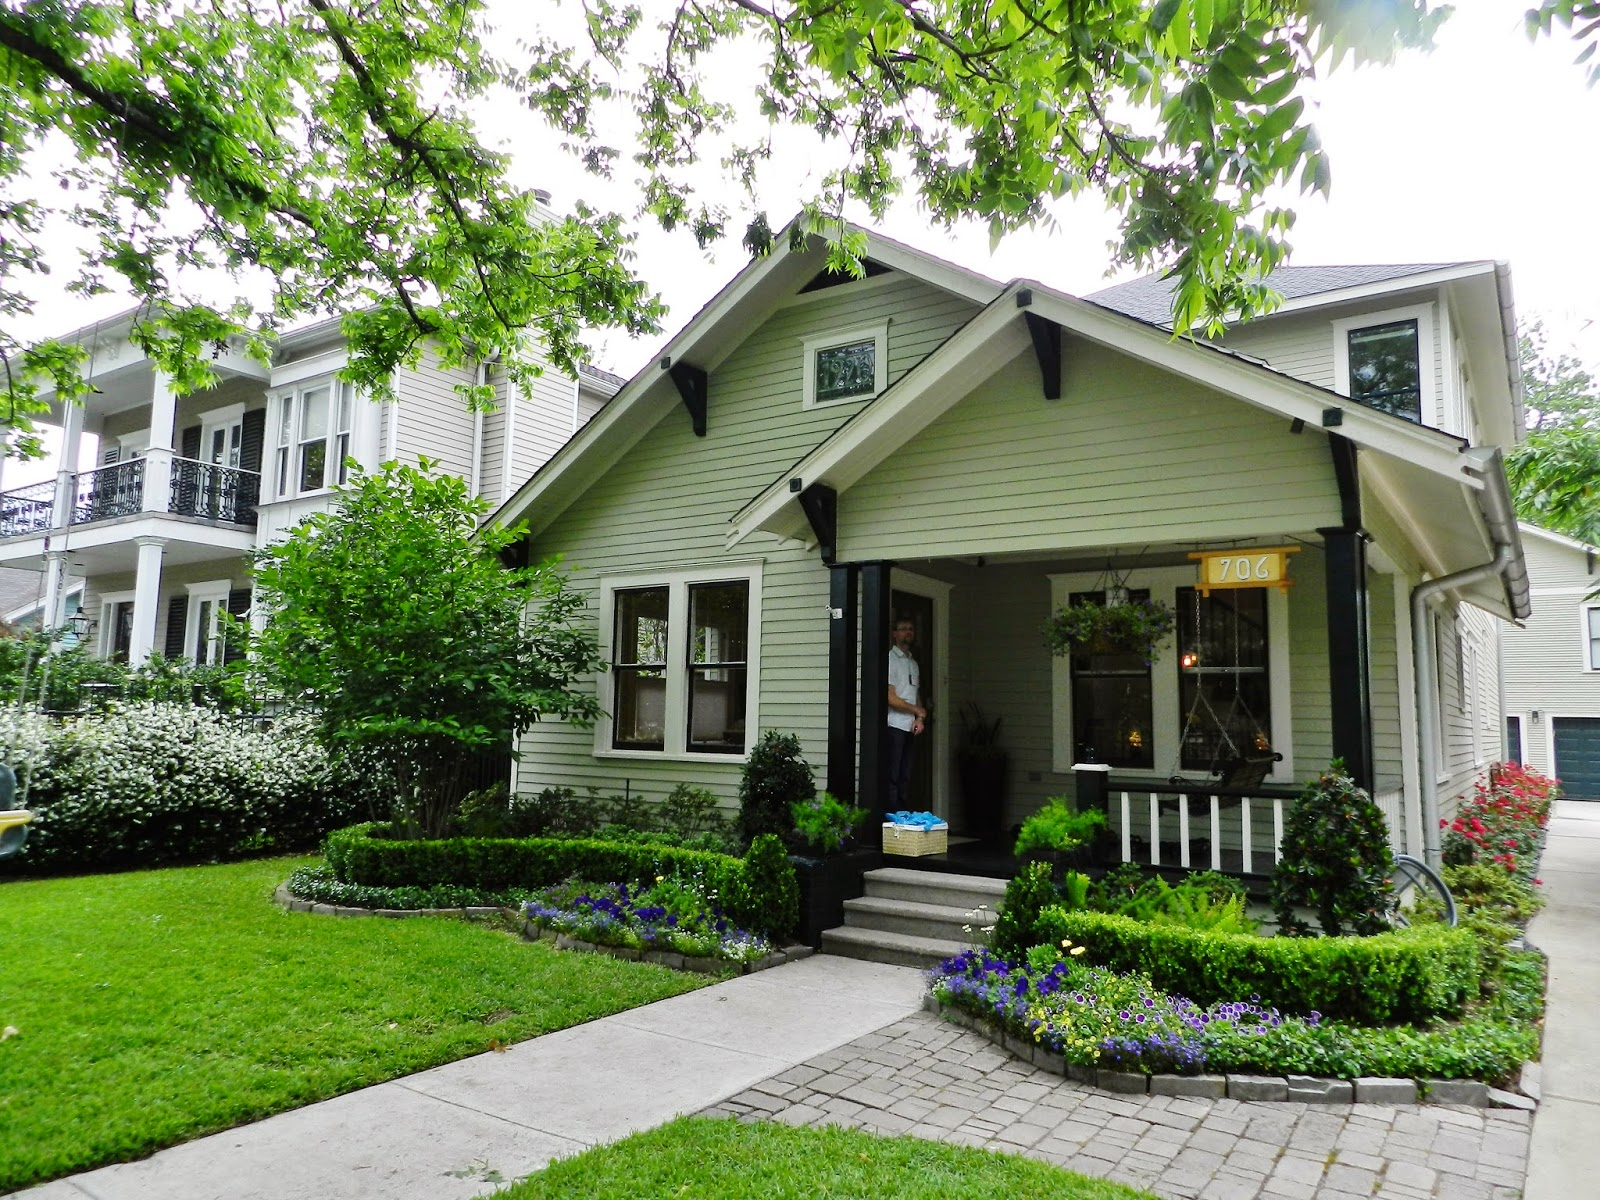 Homes for sale in Downtown Sacramento